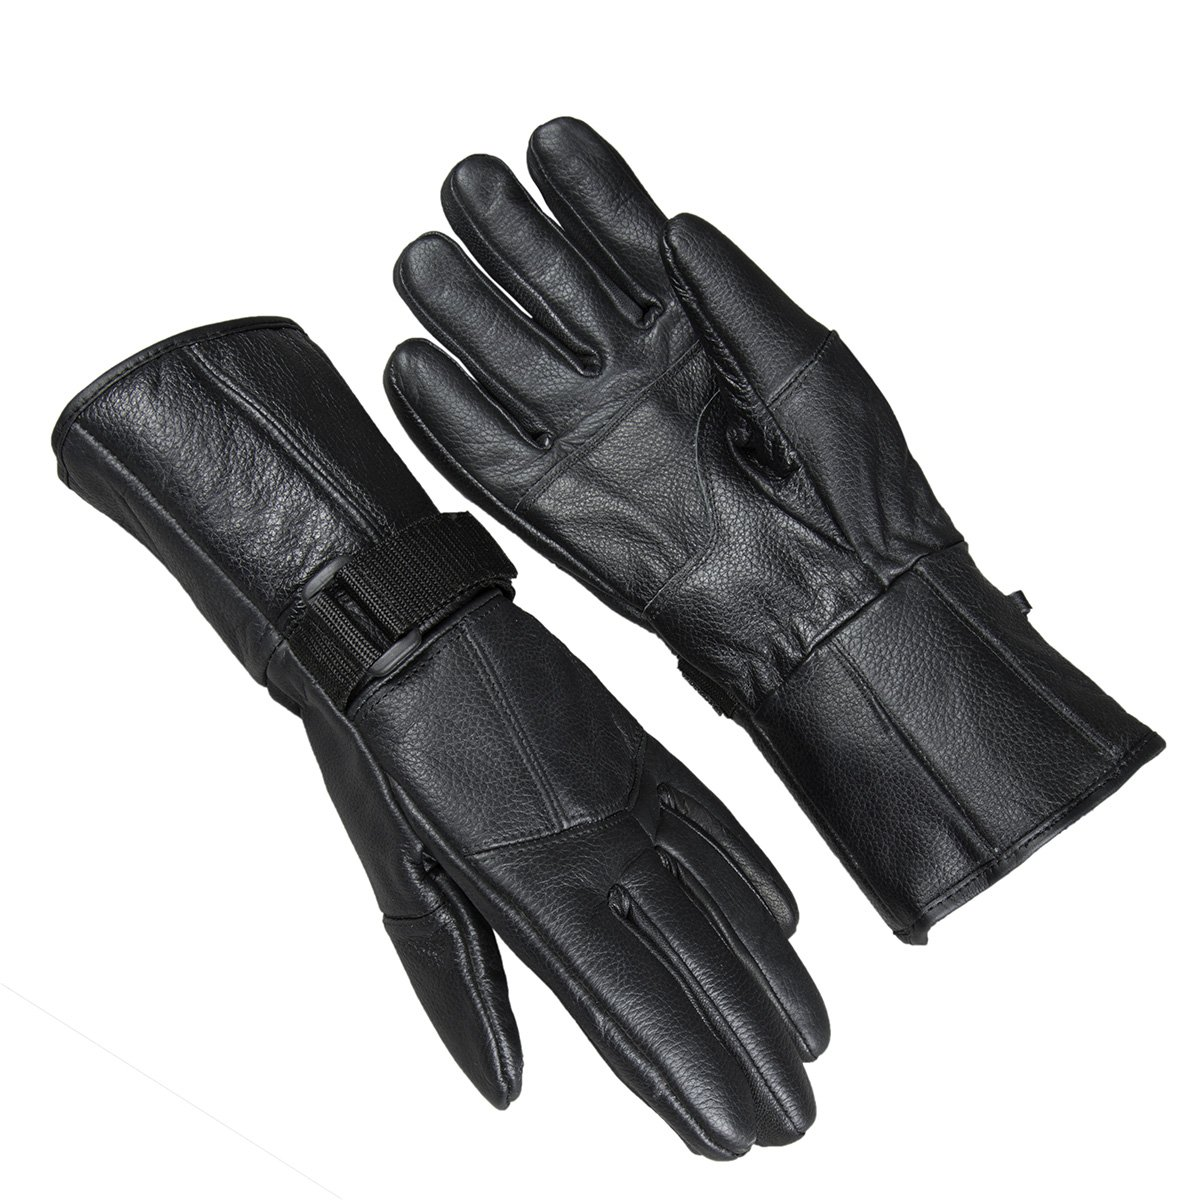 Raider Black Leather Gauntlet Motorcycle Riding Gloves for Men and Women (Size Medium)